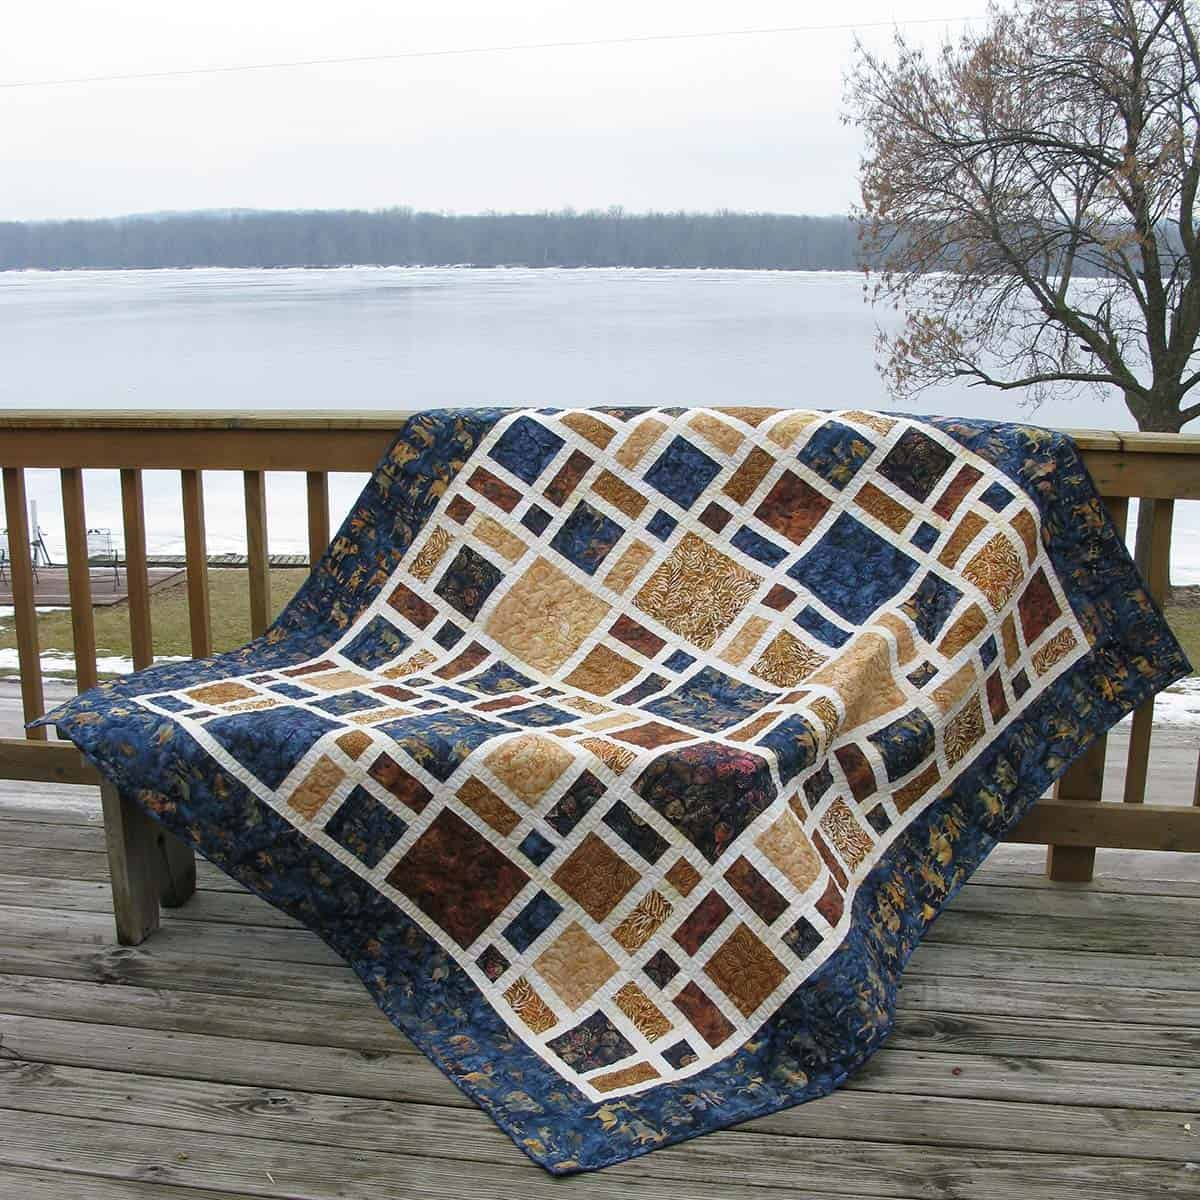 Scattered quilt on deck rail